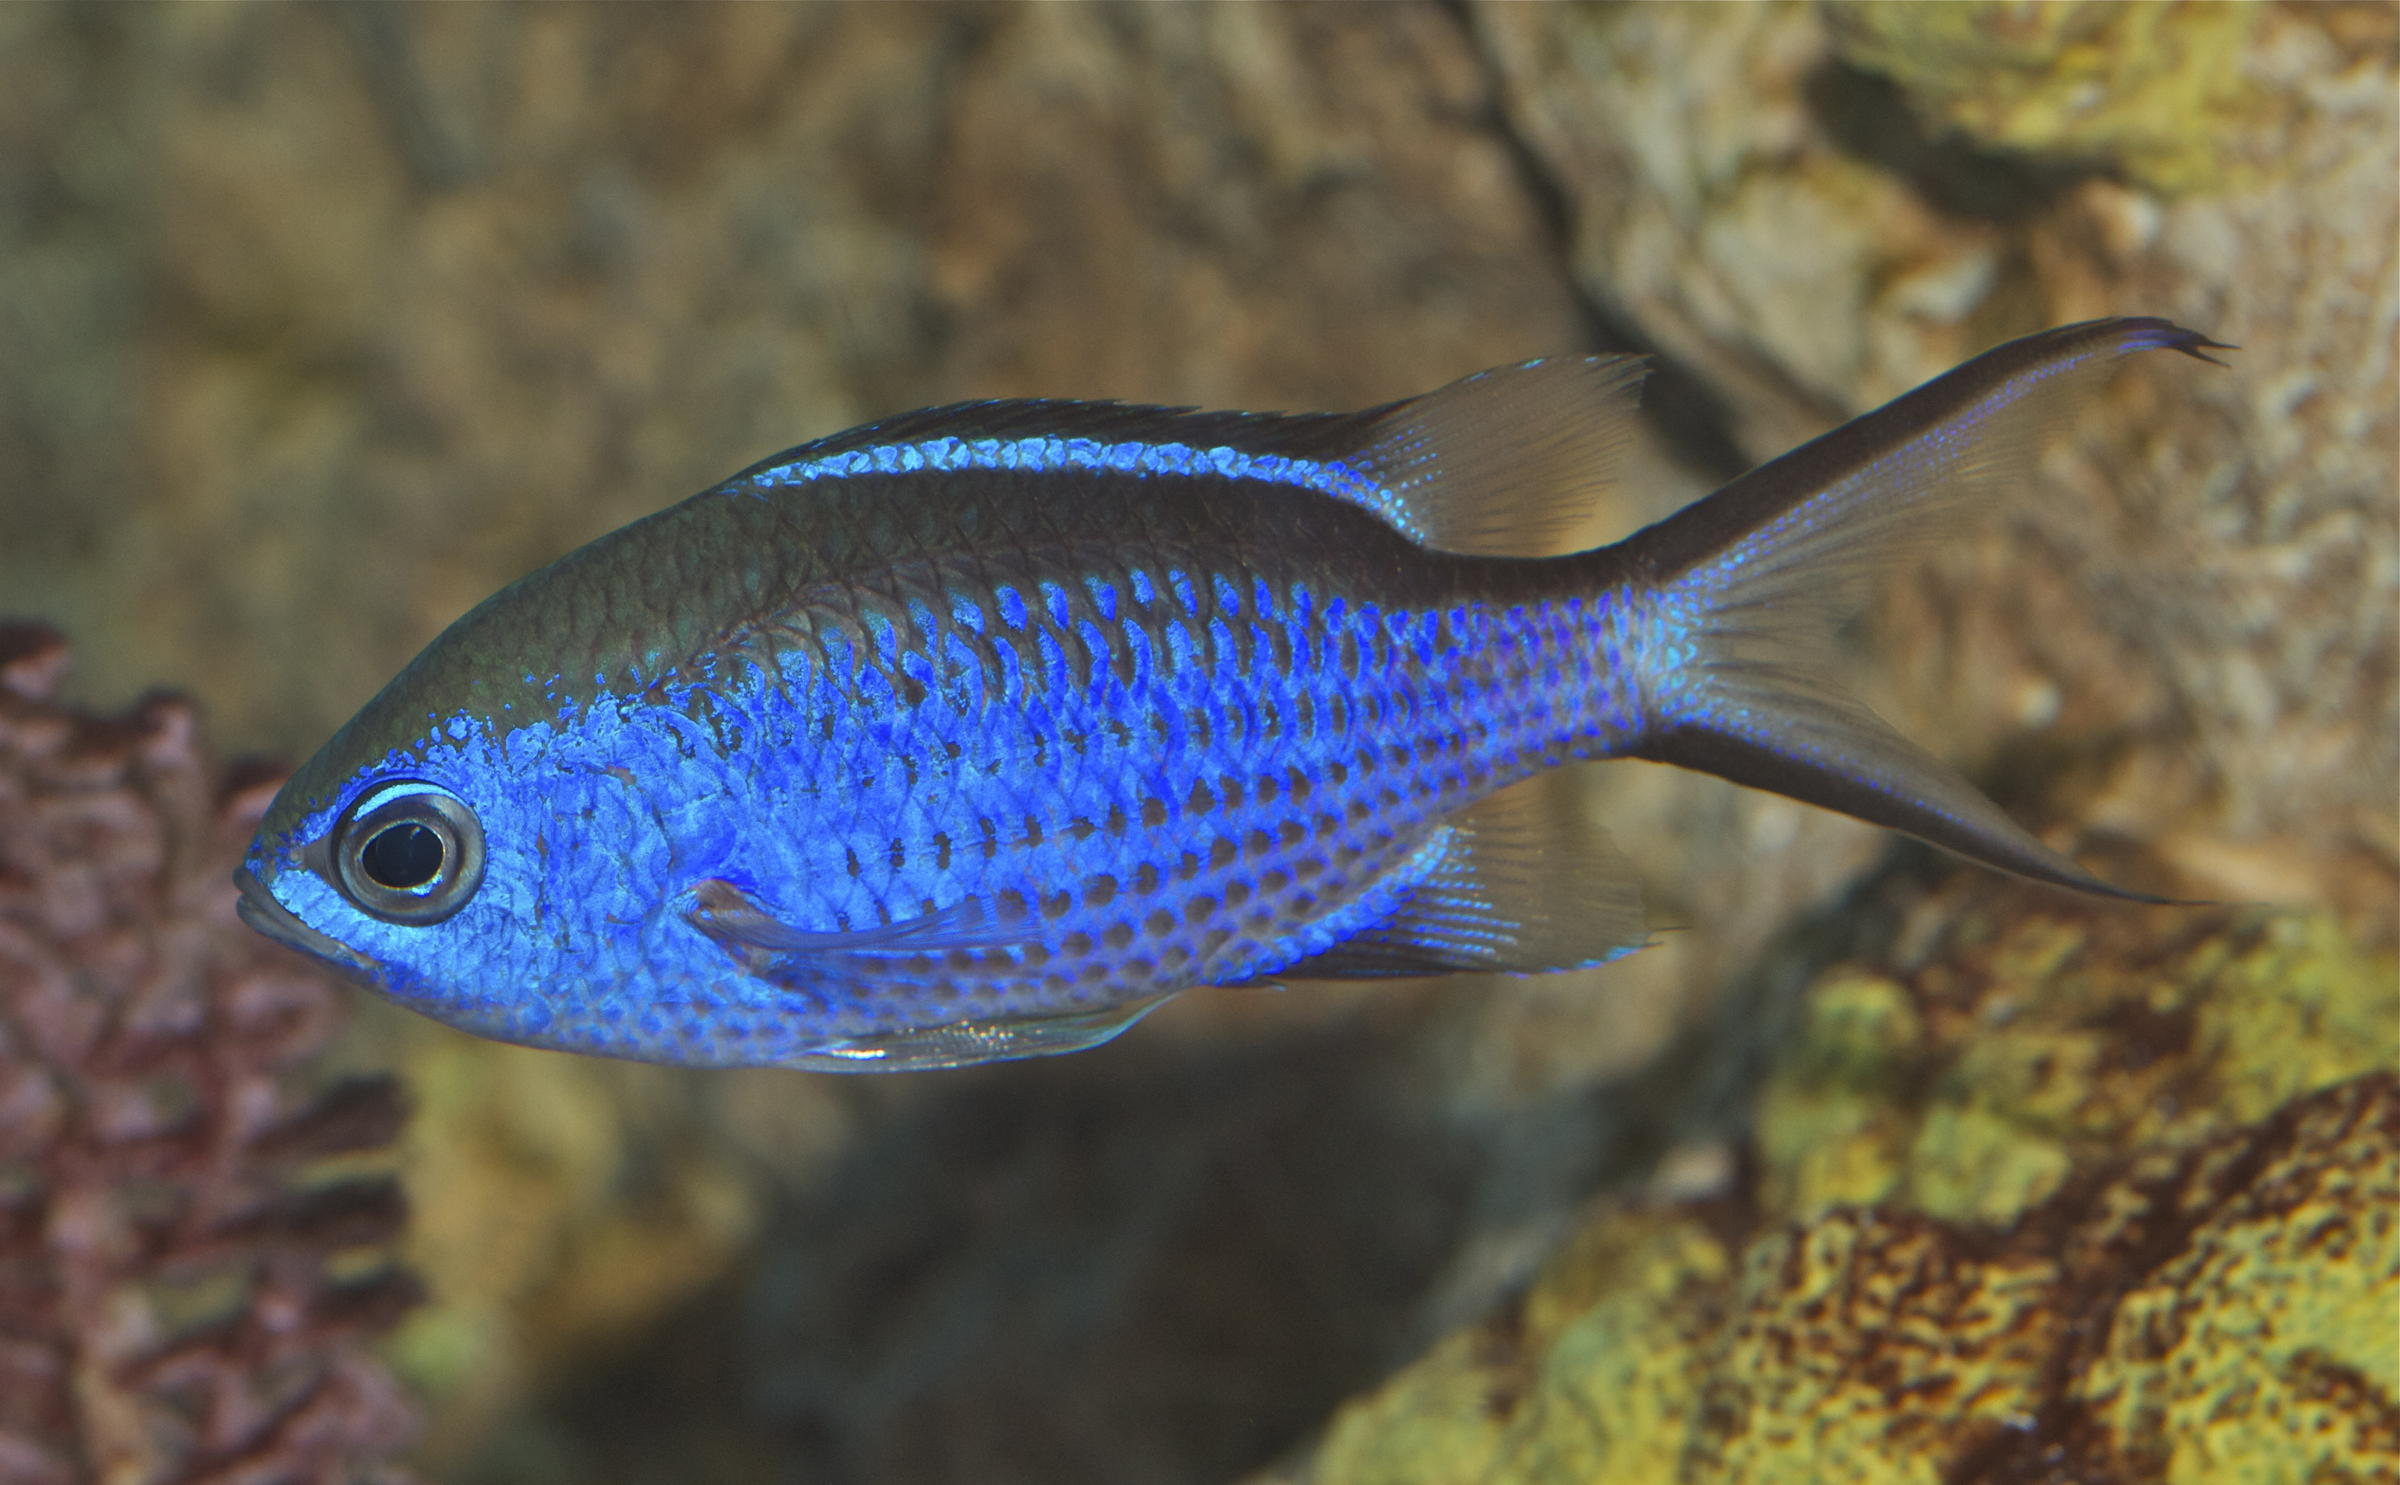 Fish in new aquarium - There Are About 100 Blue Chromis Fish In The Great Ocean Tank At New England Aquarium